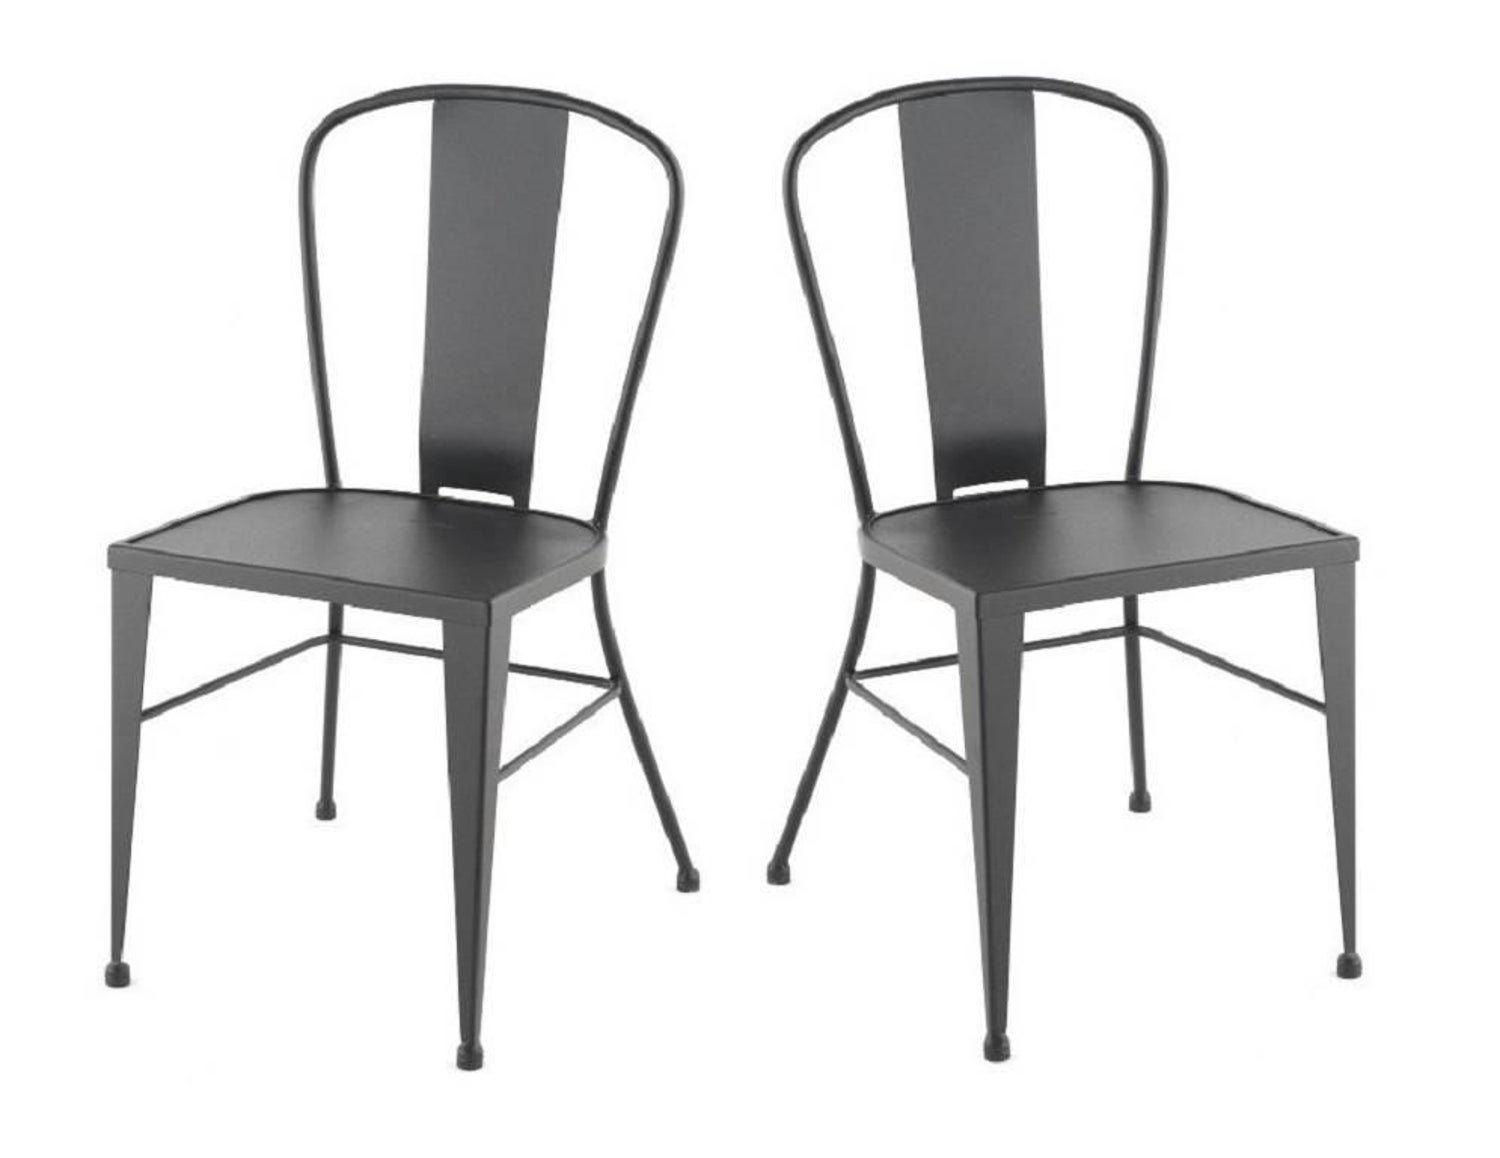 Bistro Garden Chairs in Colours Wrought Iron with Optional Wood Seat